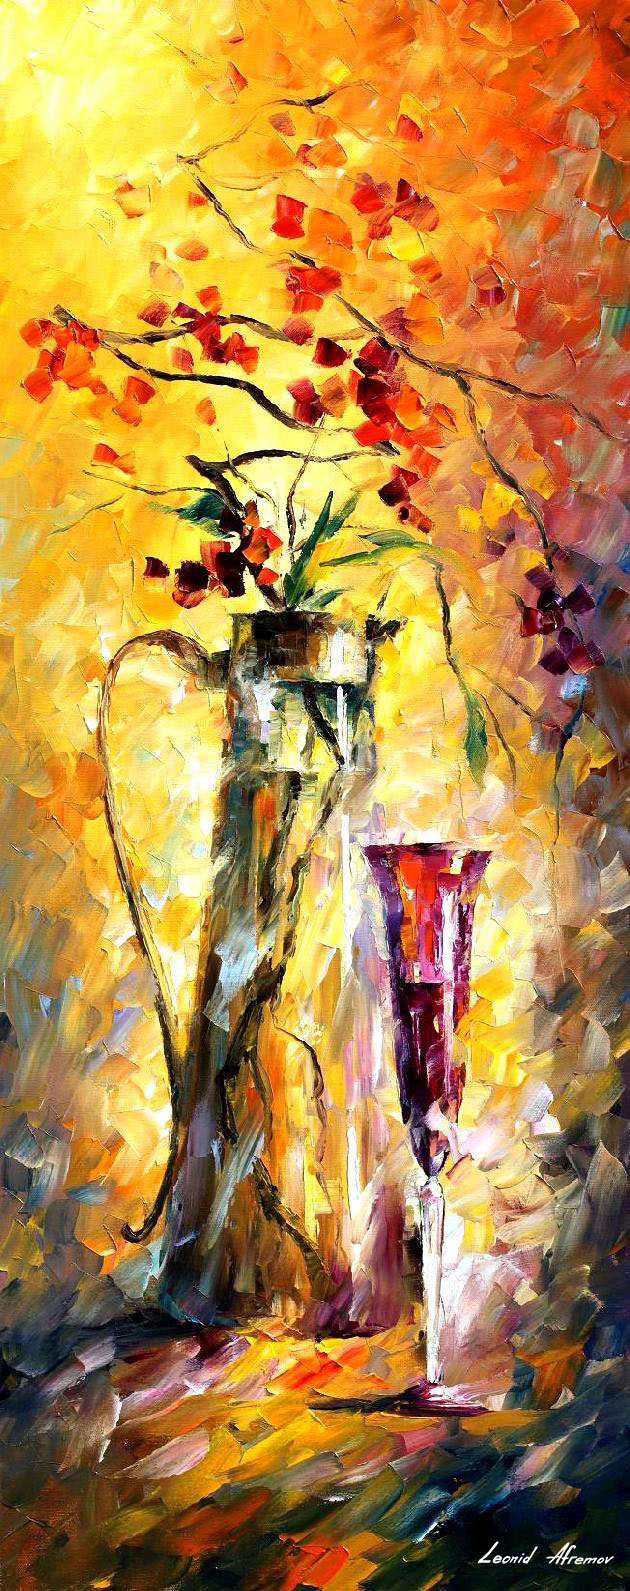 Flowers And Wine Palette Knife Oil Painting On Canvas By